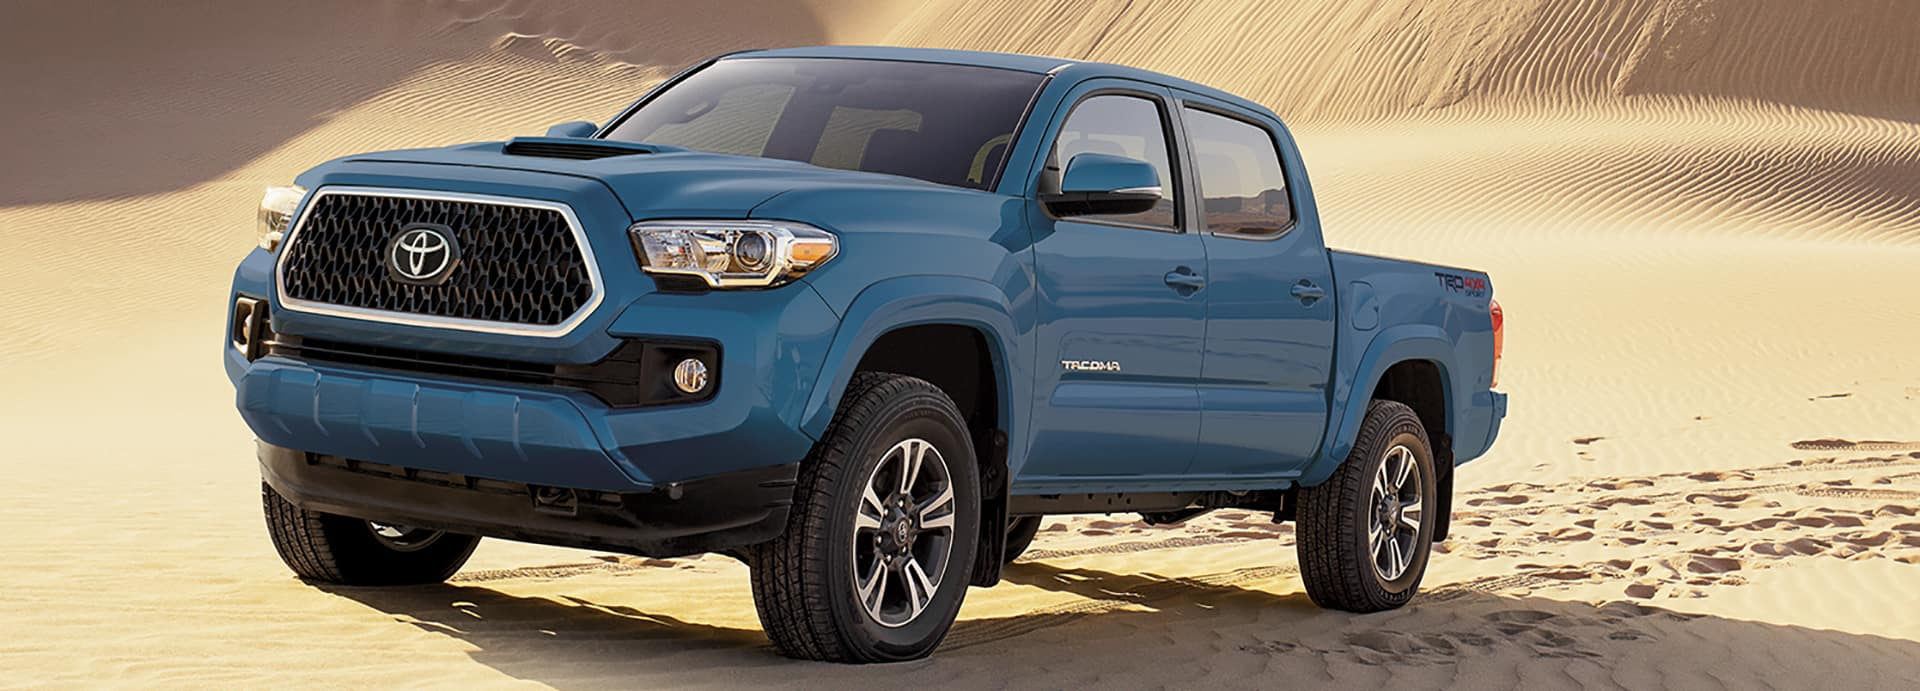 Introducing the All-New 2019 Toyota Tacoma | Lancaster Toyota